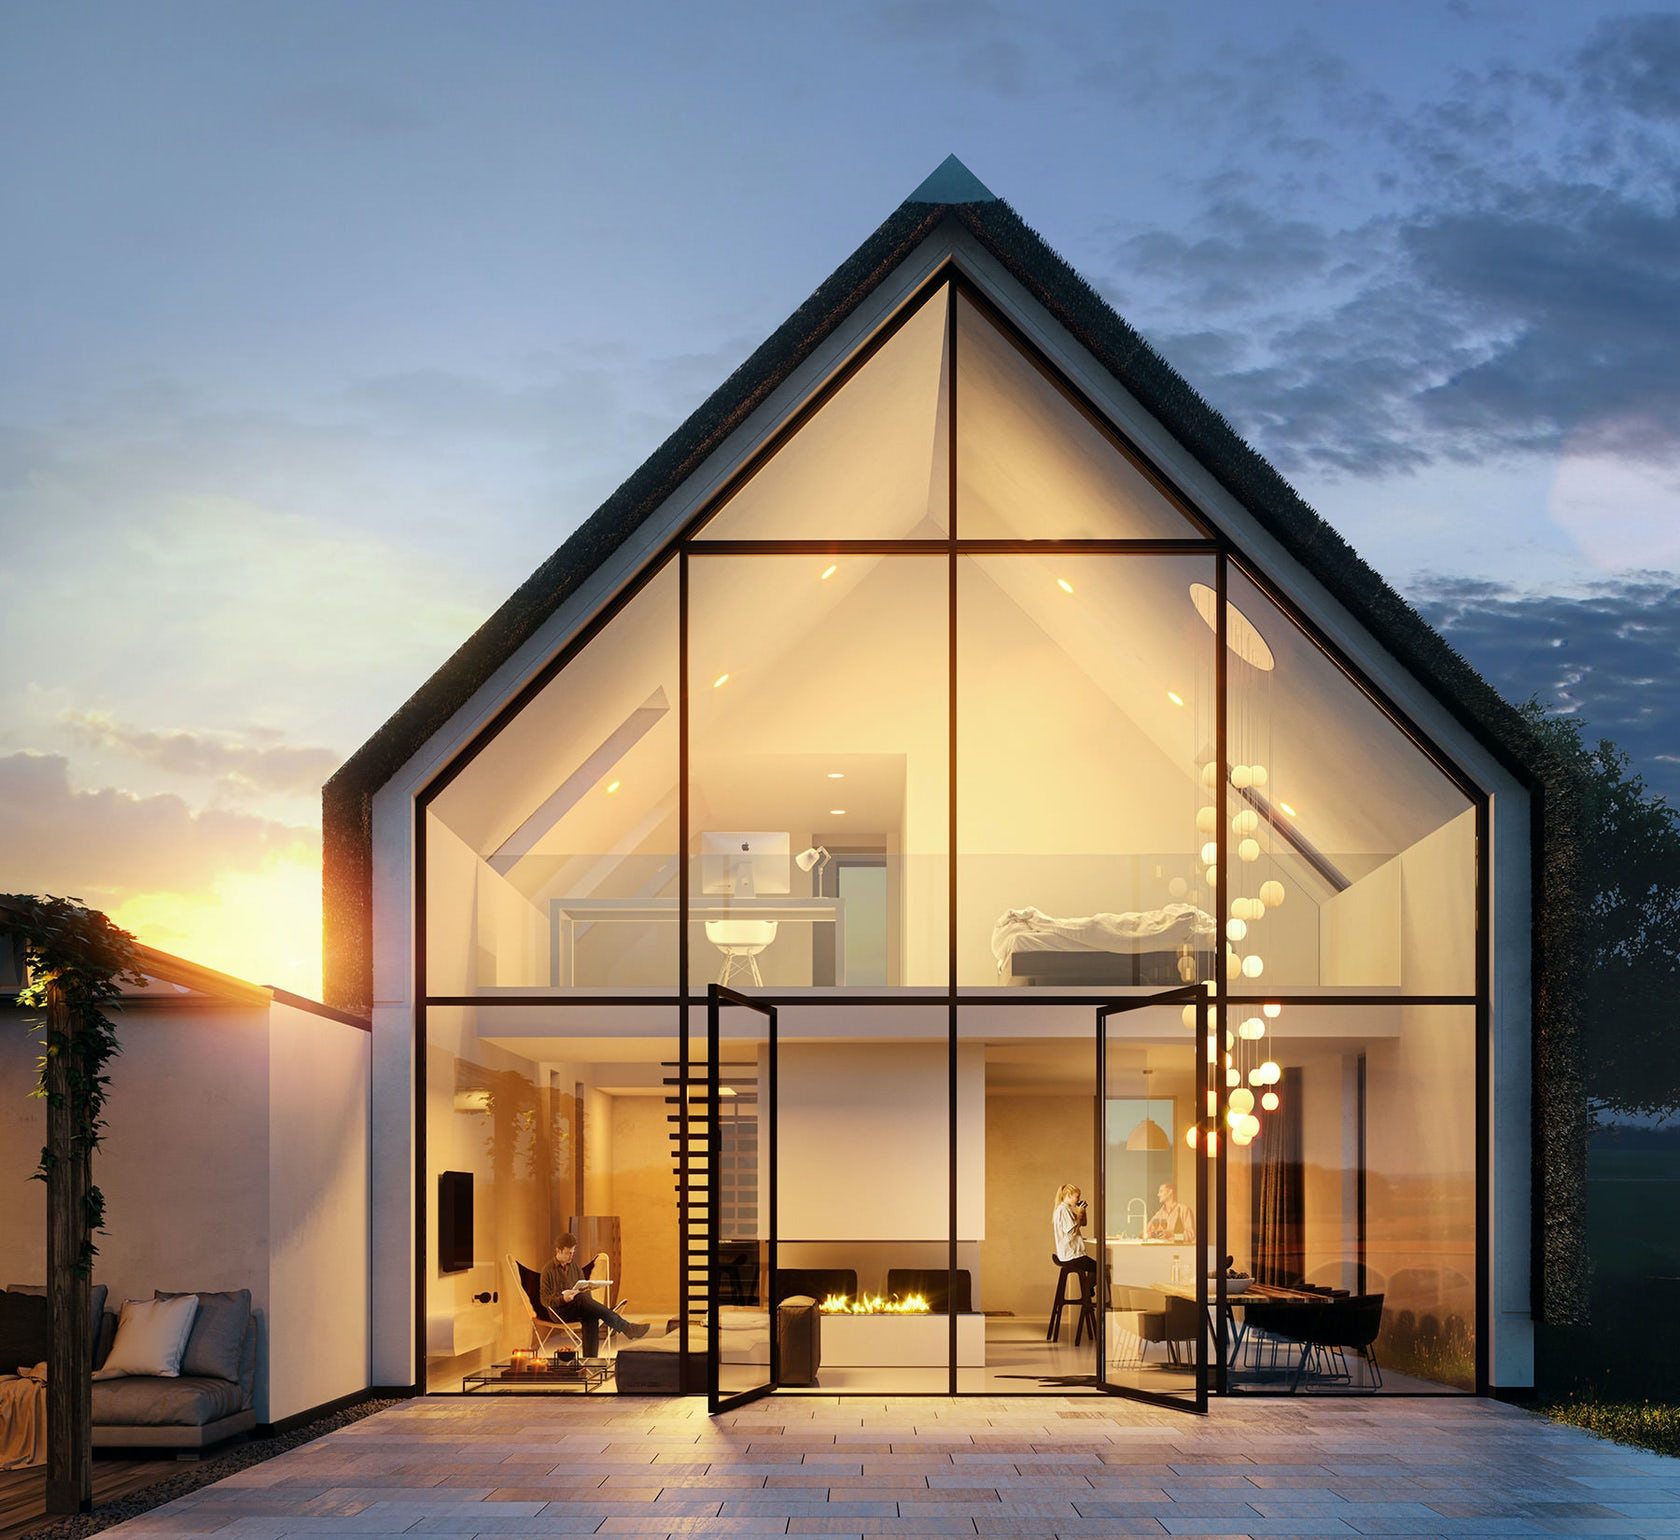 Lunas visualization architizer for House visualizer